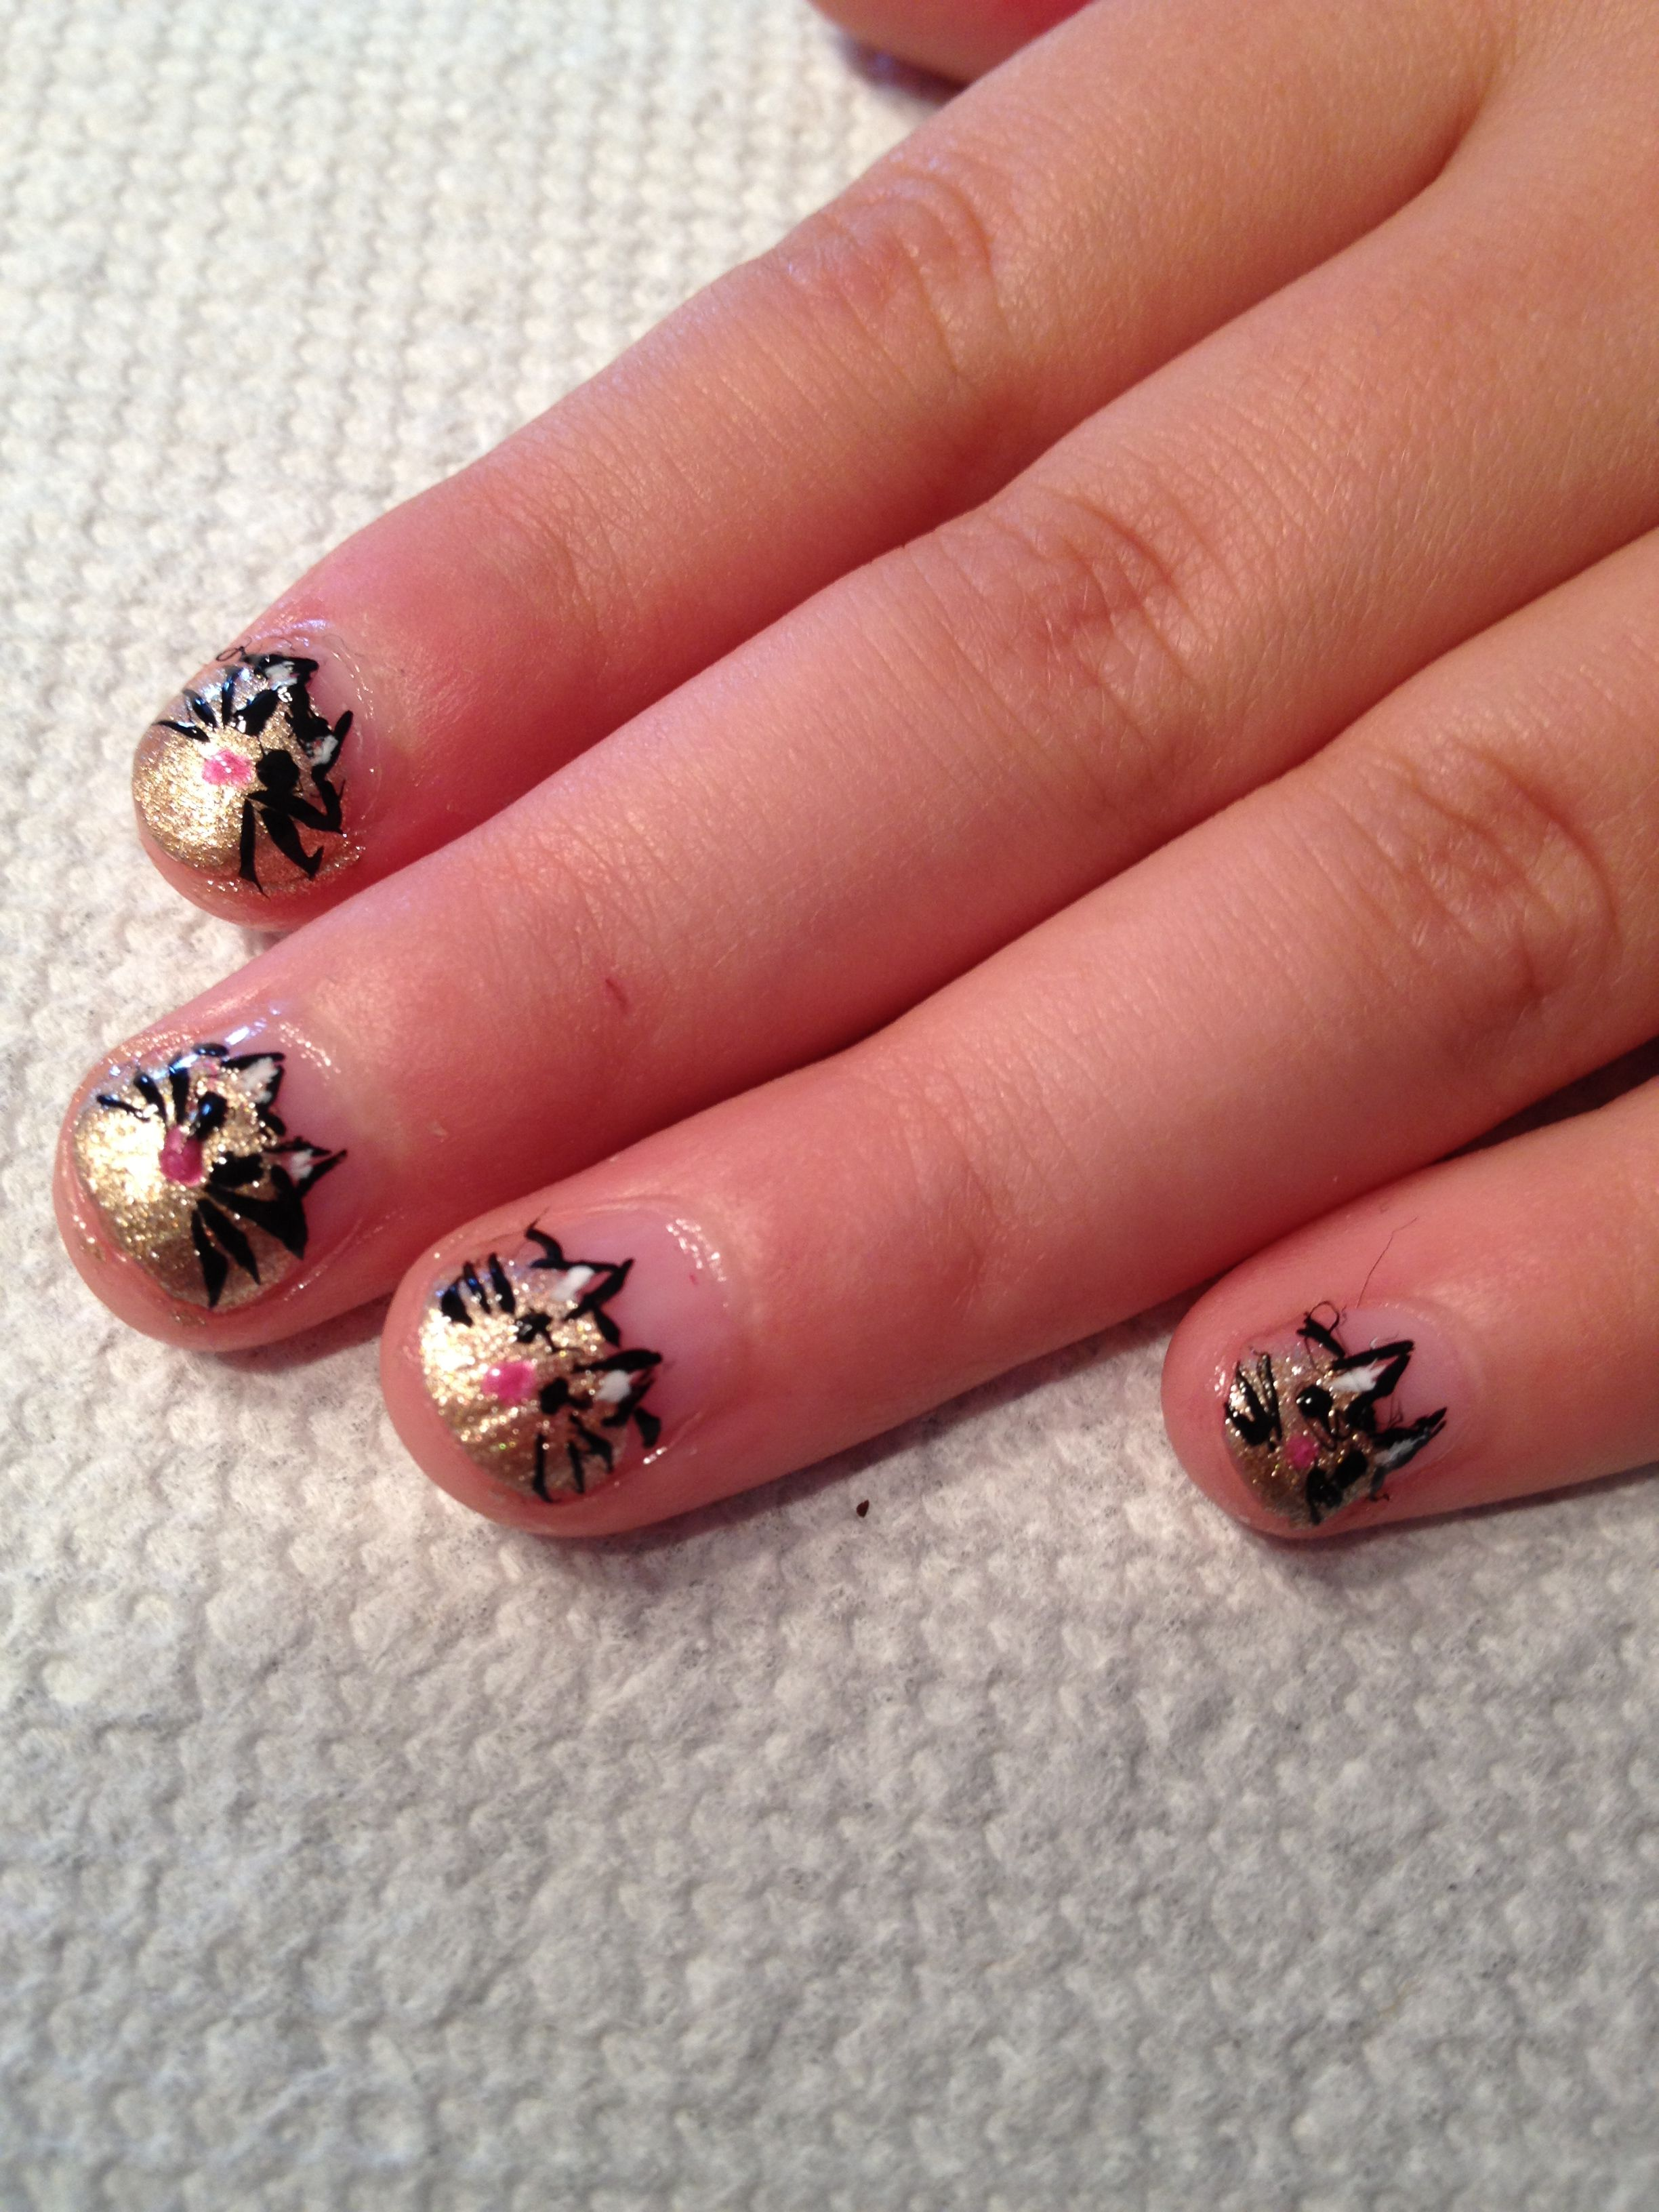 Cute nails for a little girl. | Nails for me and my girl ...